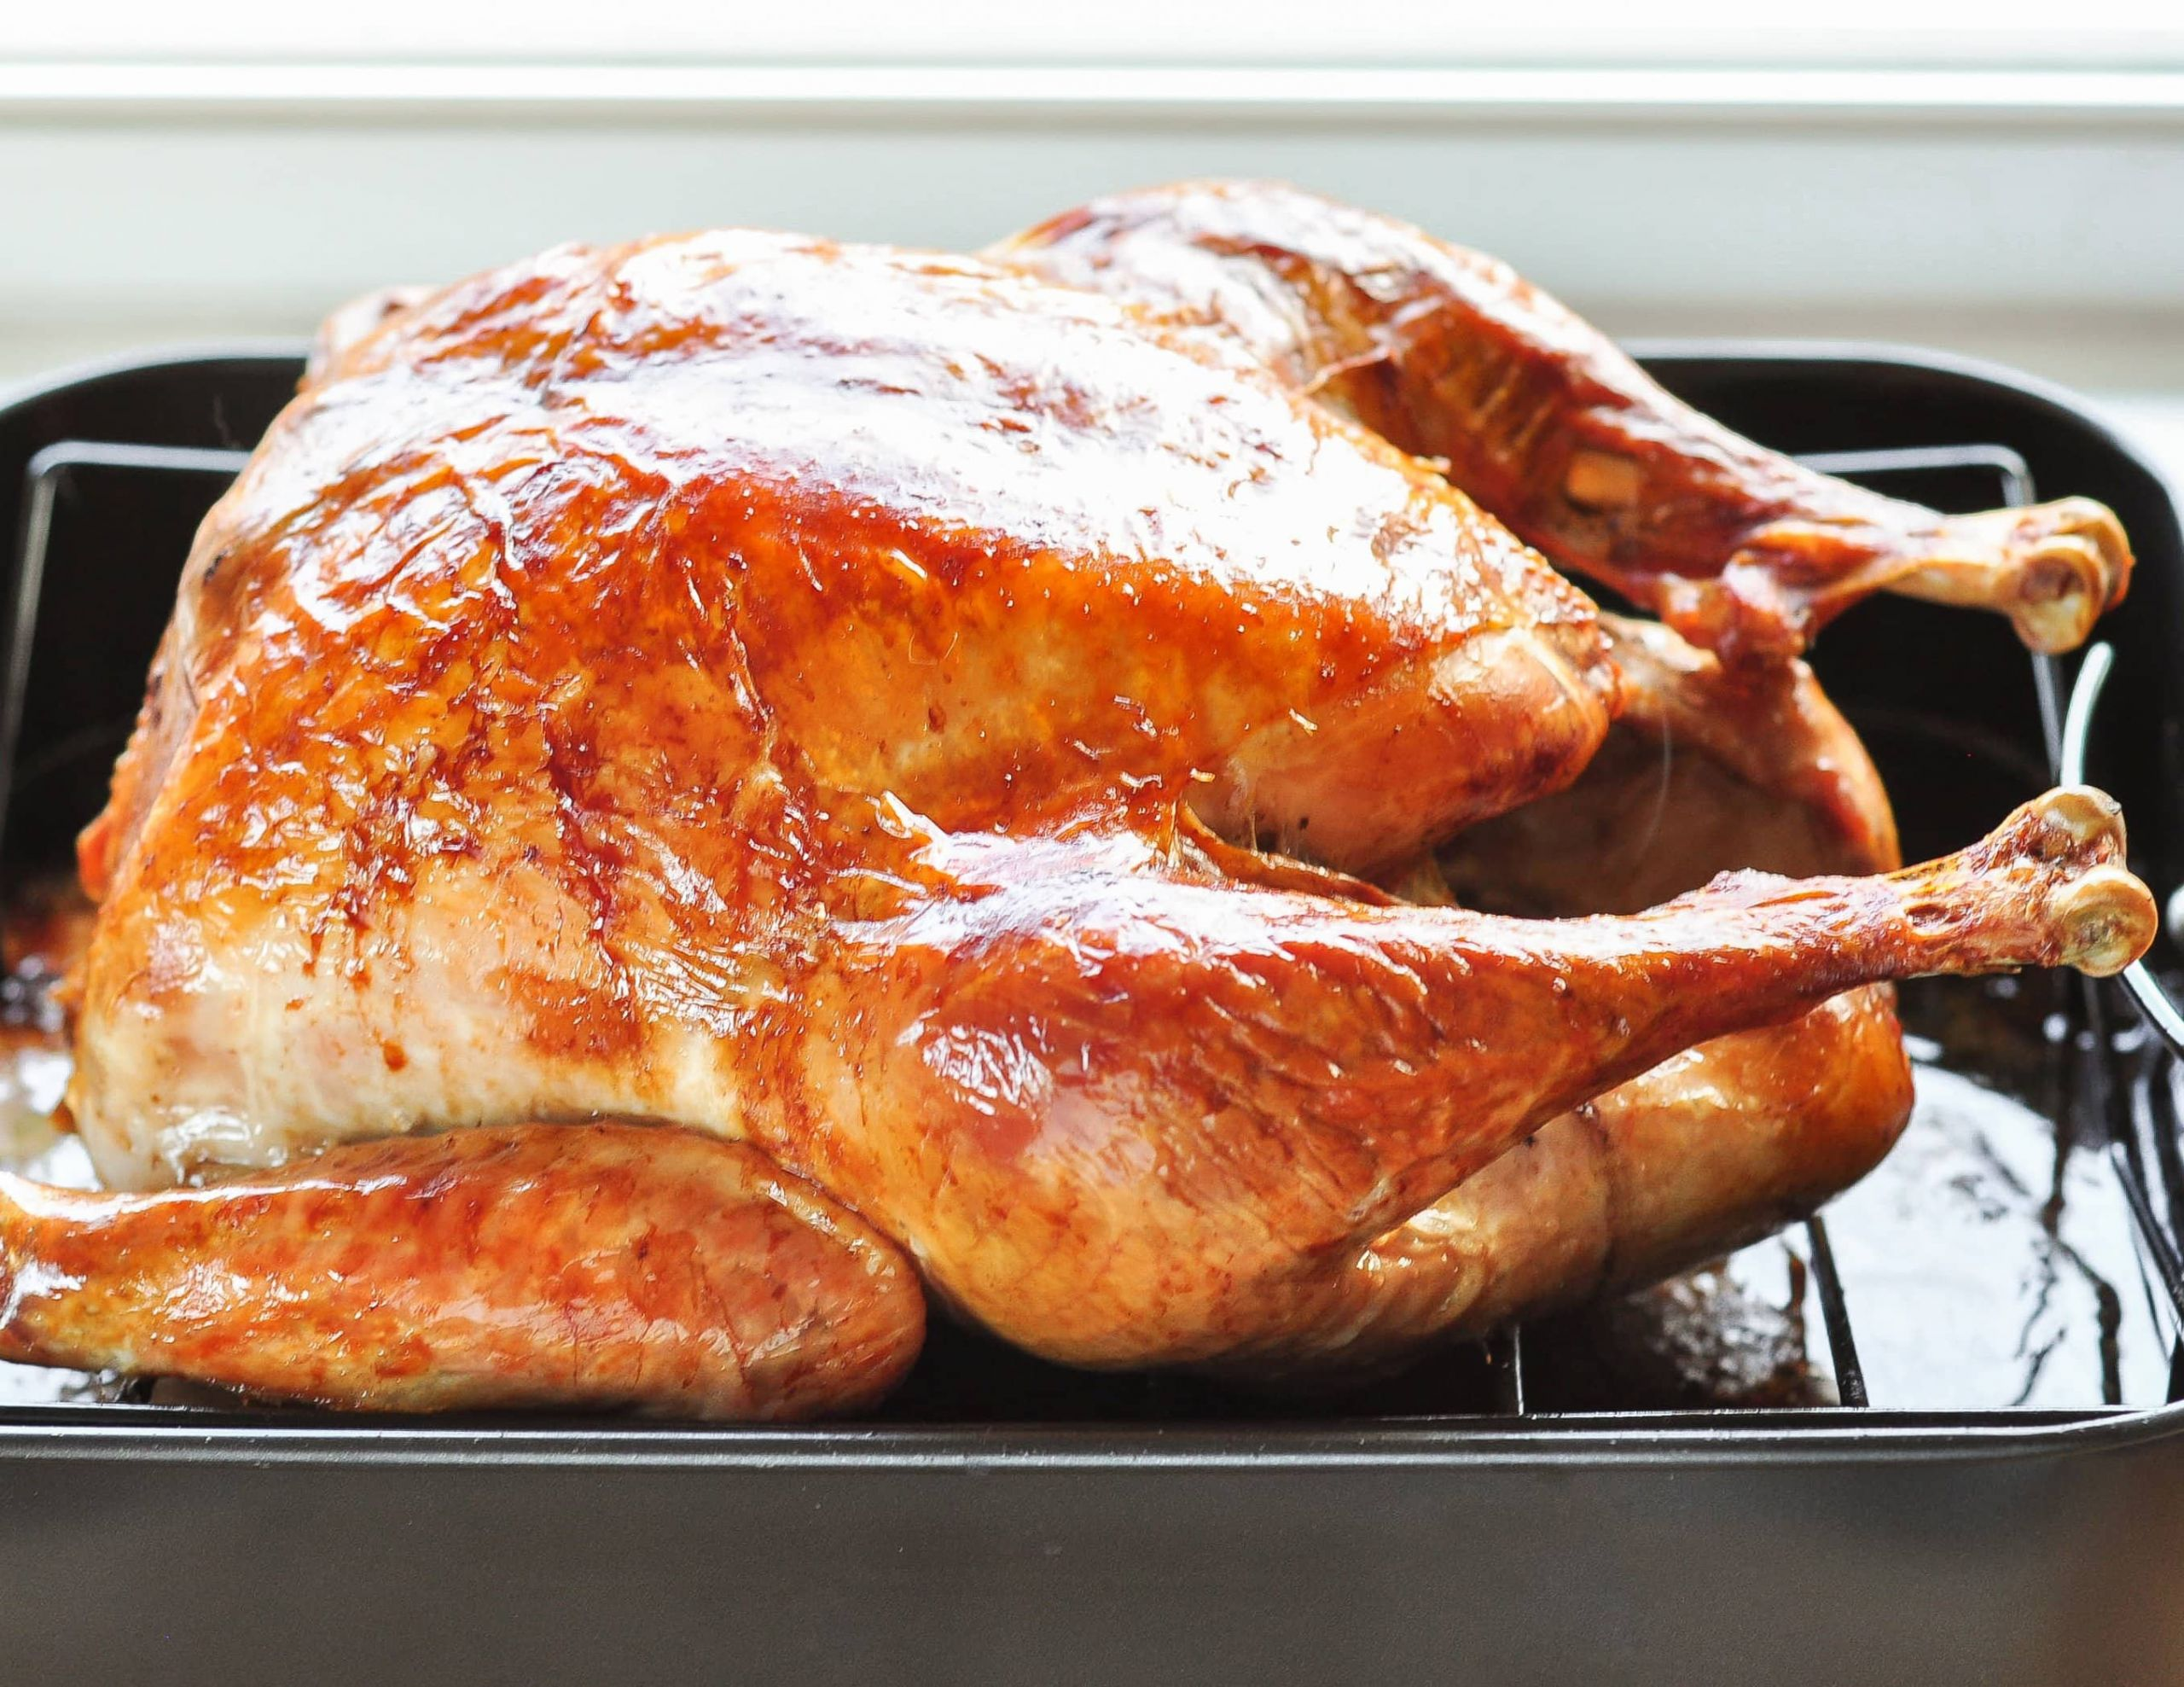 Cooked Thanksgiving Turkey  How To Cook a Turkey The Simplest Easiest Method